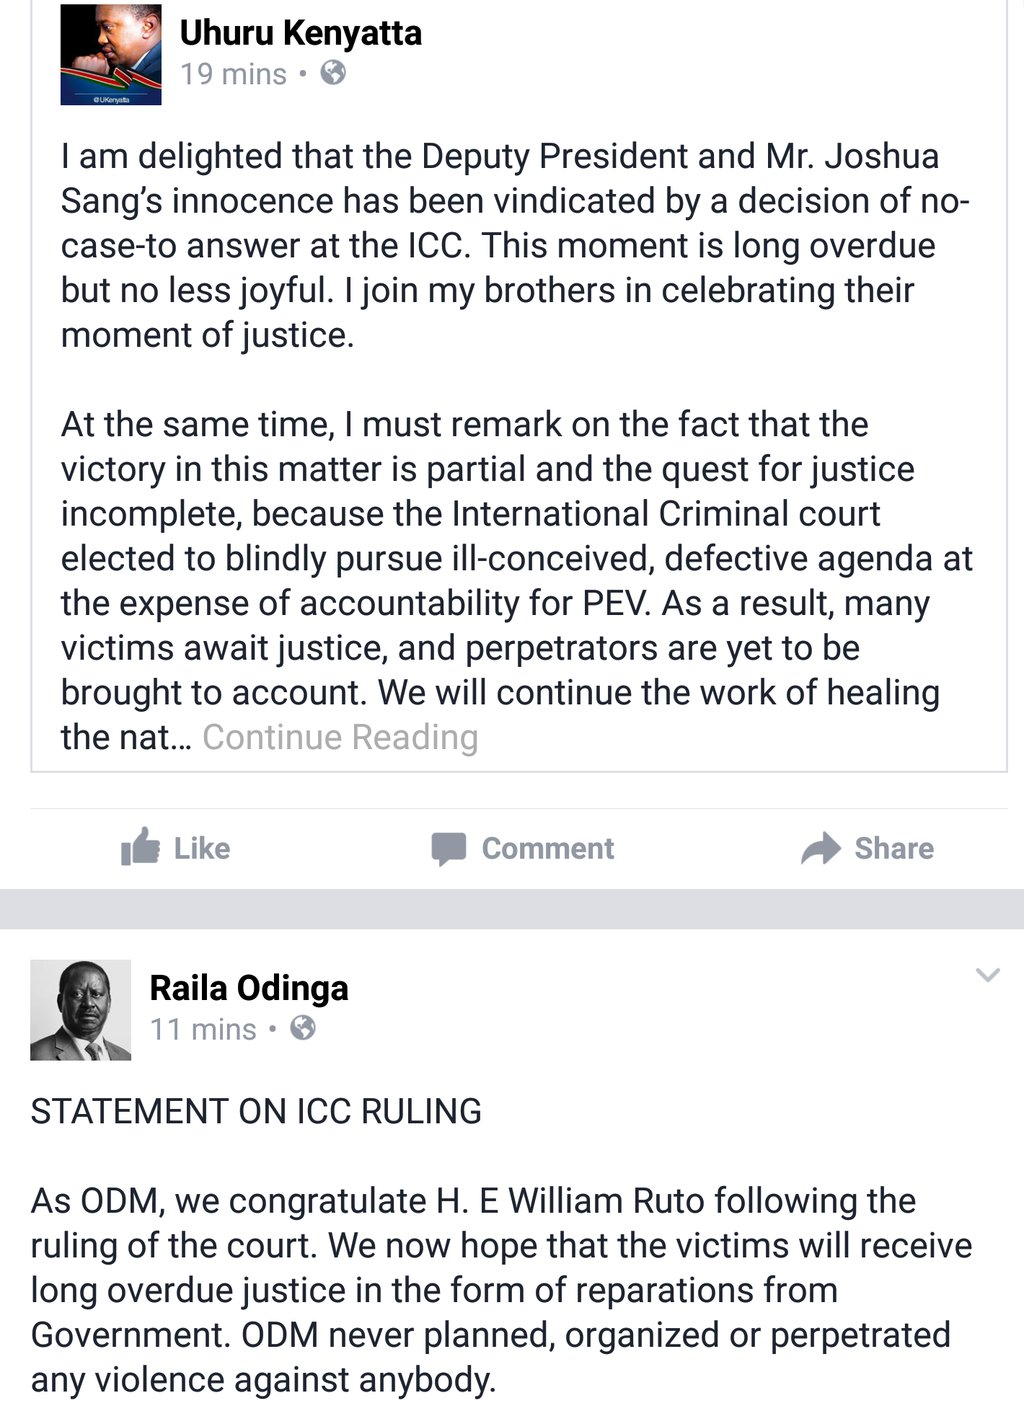 Uhuru Kenyatta and Raila Odinga congratulate William Ruto and Joshua Arap Sang after no case to answer motion in the ICC was dropped